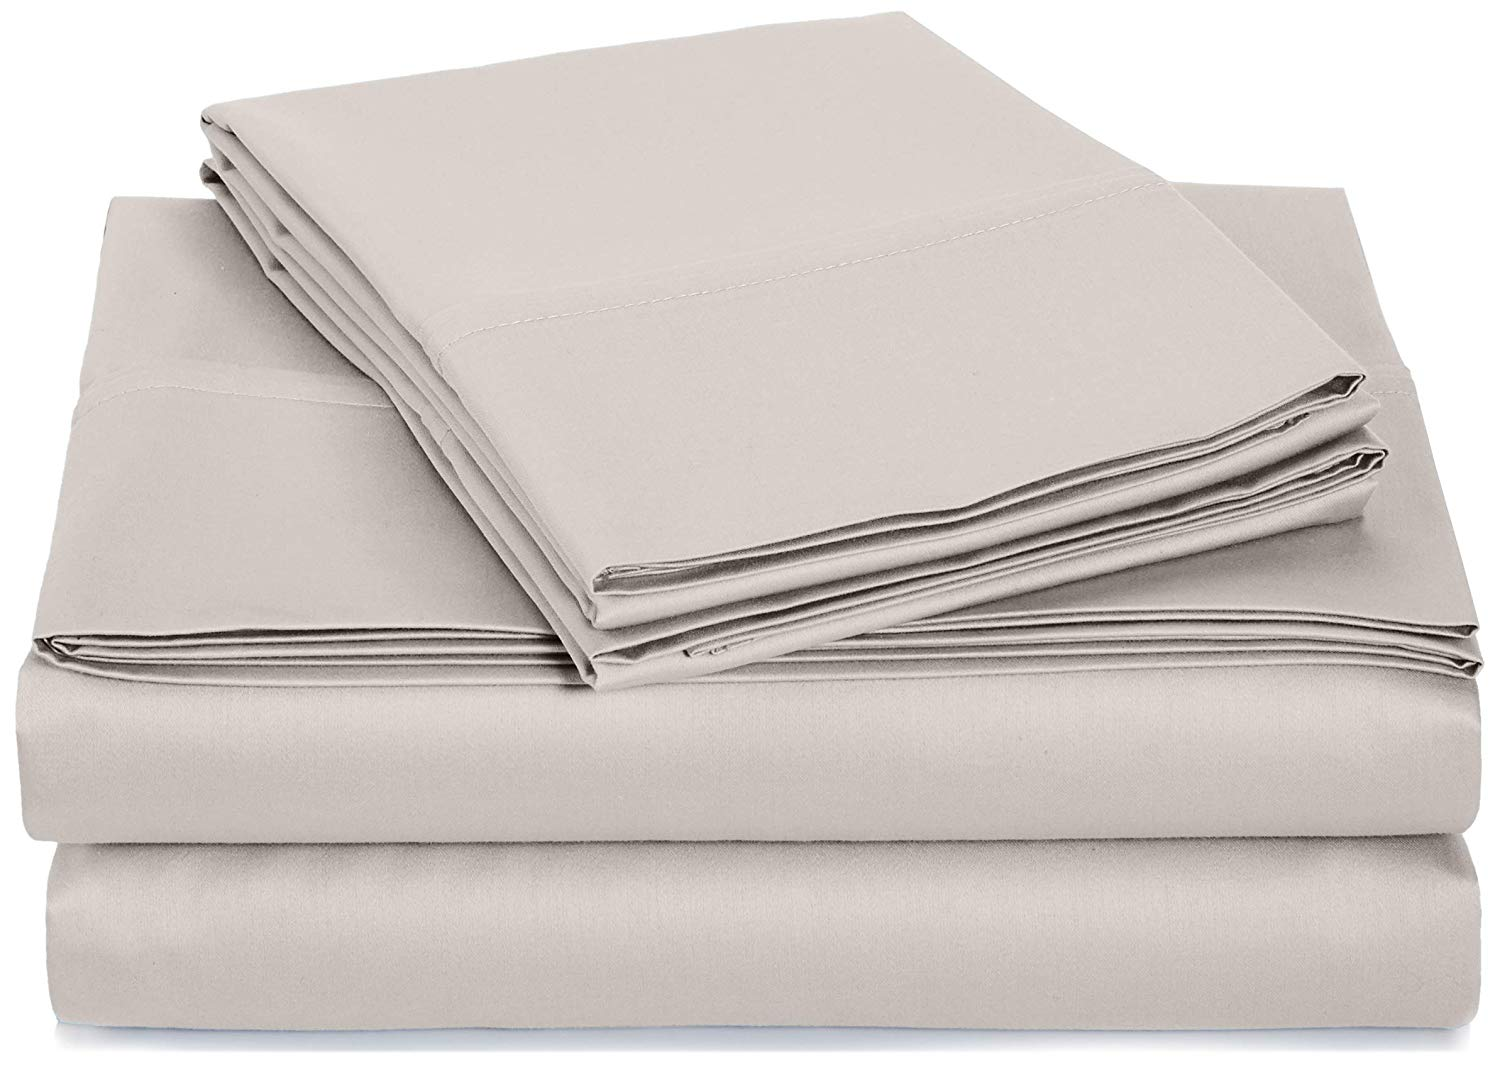 AmazonBasics Best Cotton Sheets Review by www.snoremagazine.com